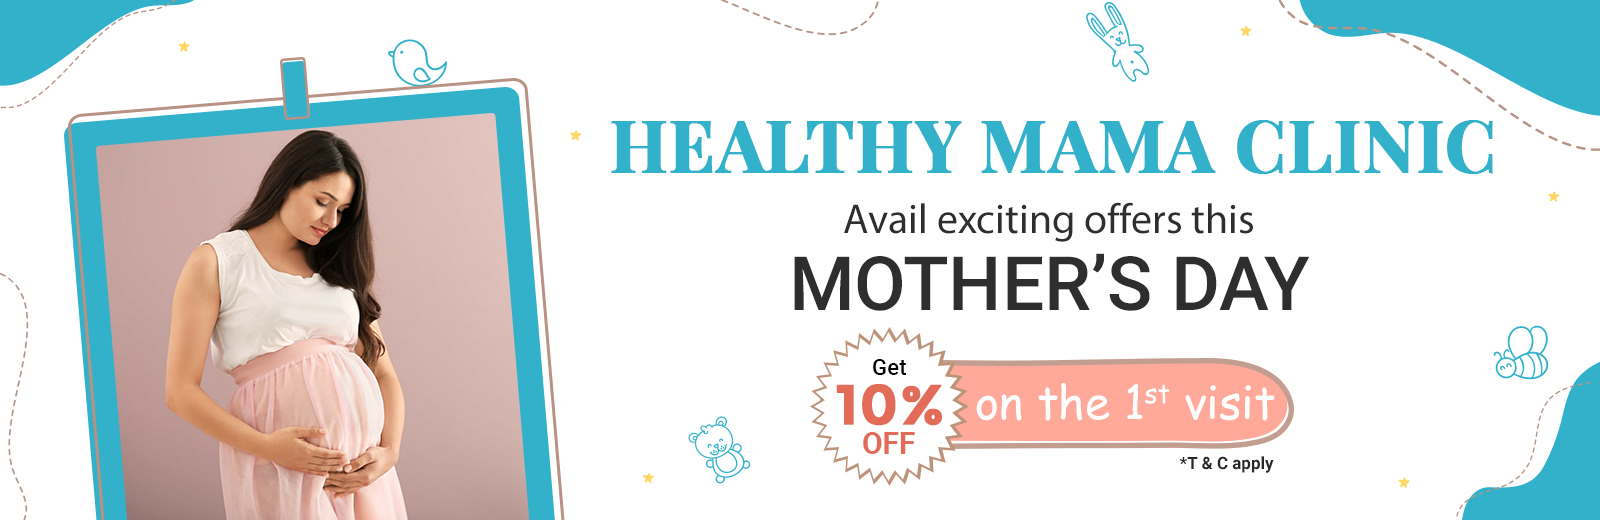 Healthy Mama Clinic Mother's Day Offer